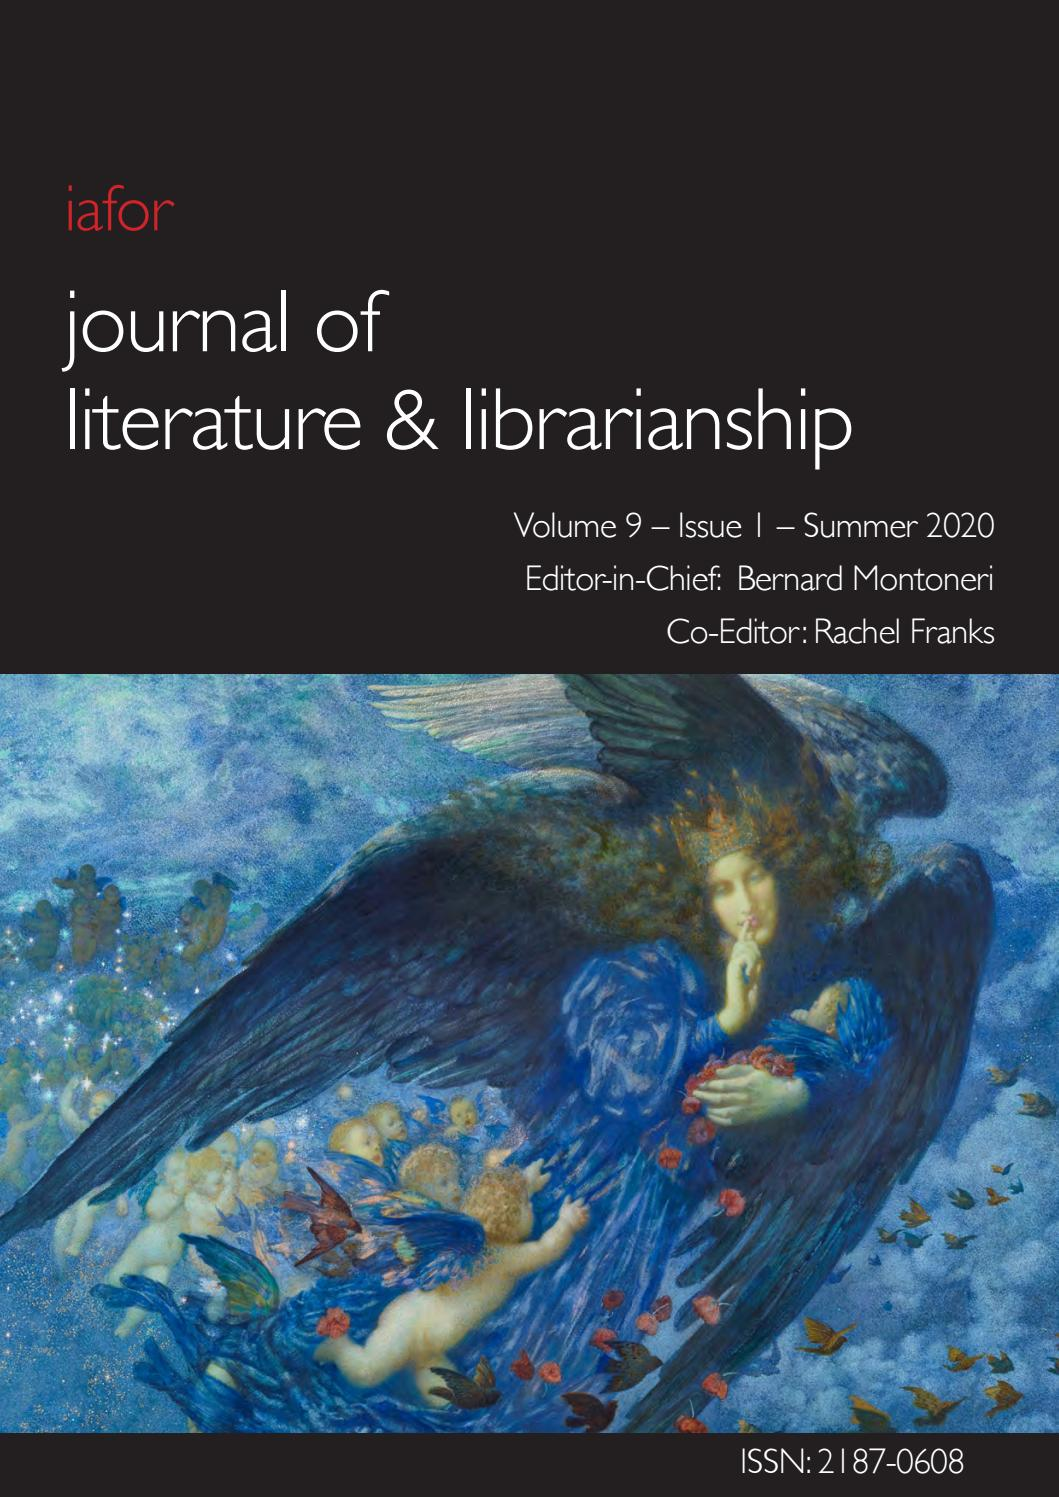 Iafor Journal Of Literature Librarianship Volume 9 Issue 1 By Iafor Issuu Elliot passed away on month day 2014, at age 38. iafor journal of literature